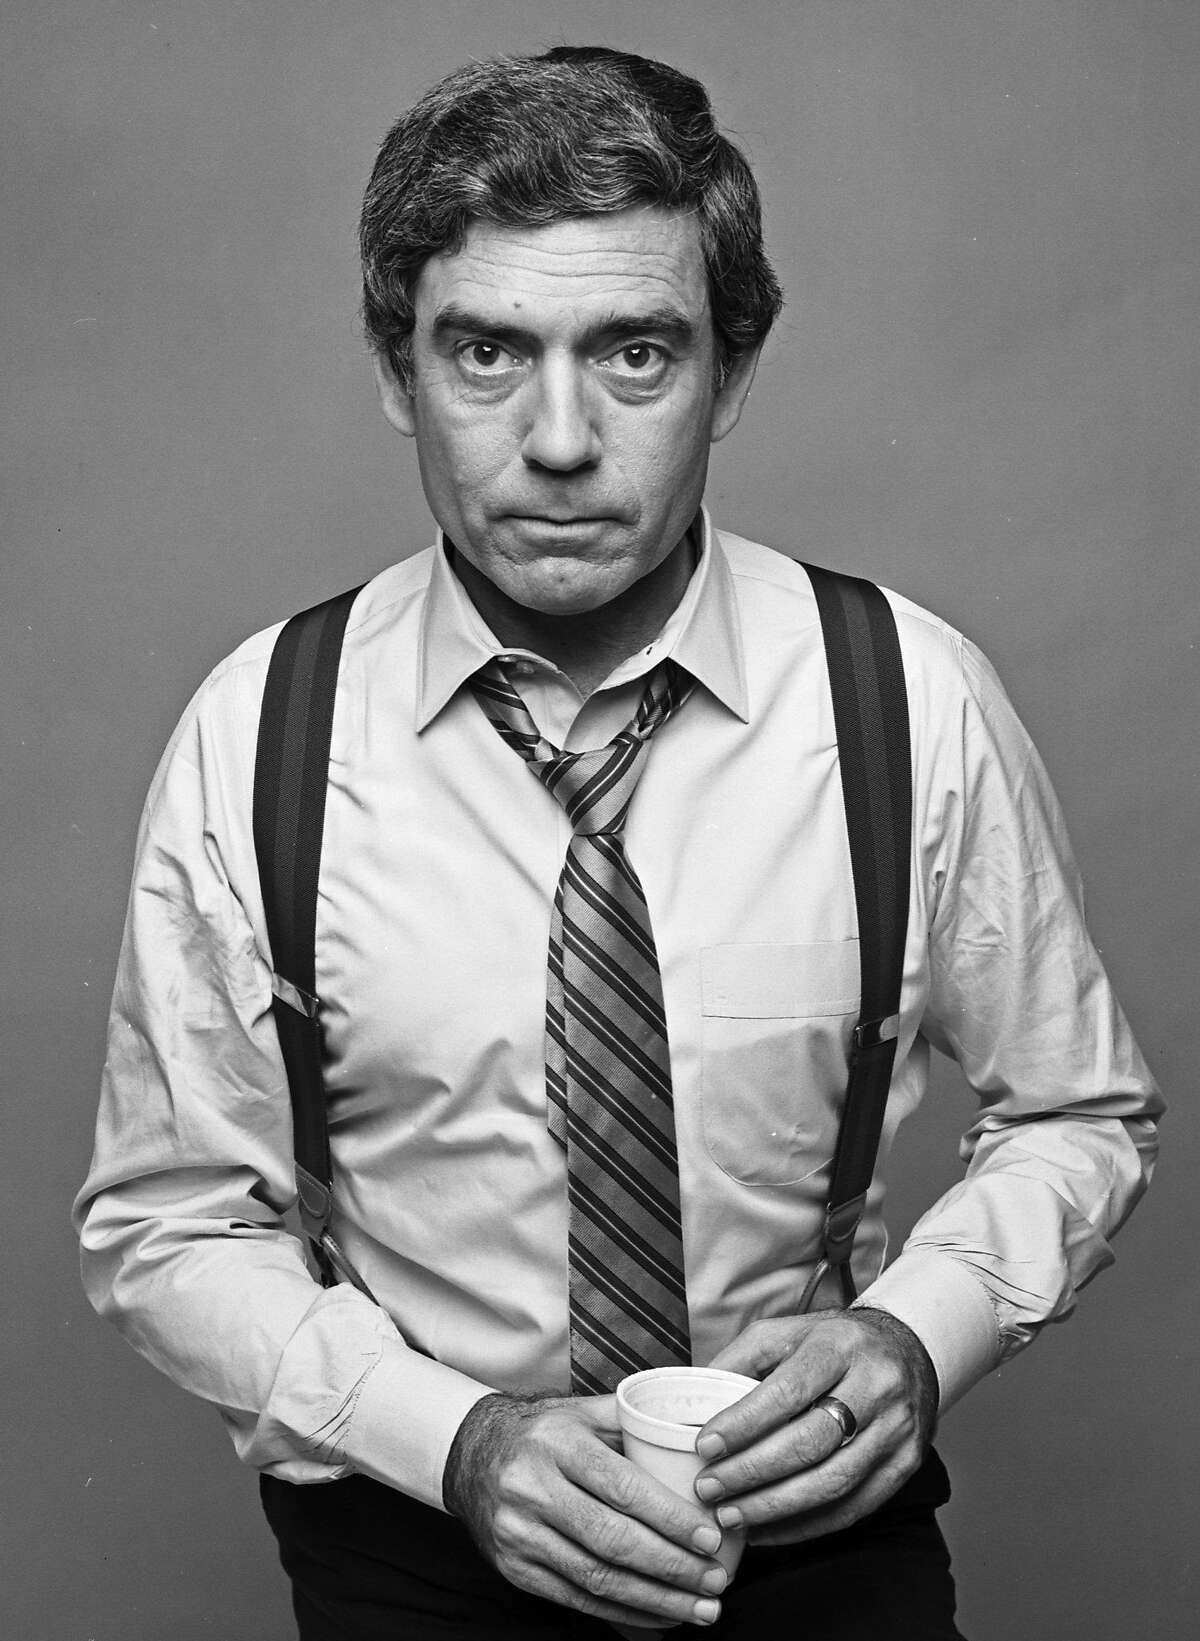 CBS News anchor Dan Rather photographed in December 1980. (Photo by Jack Mitchell/Getty Images)